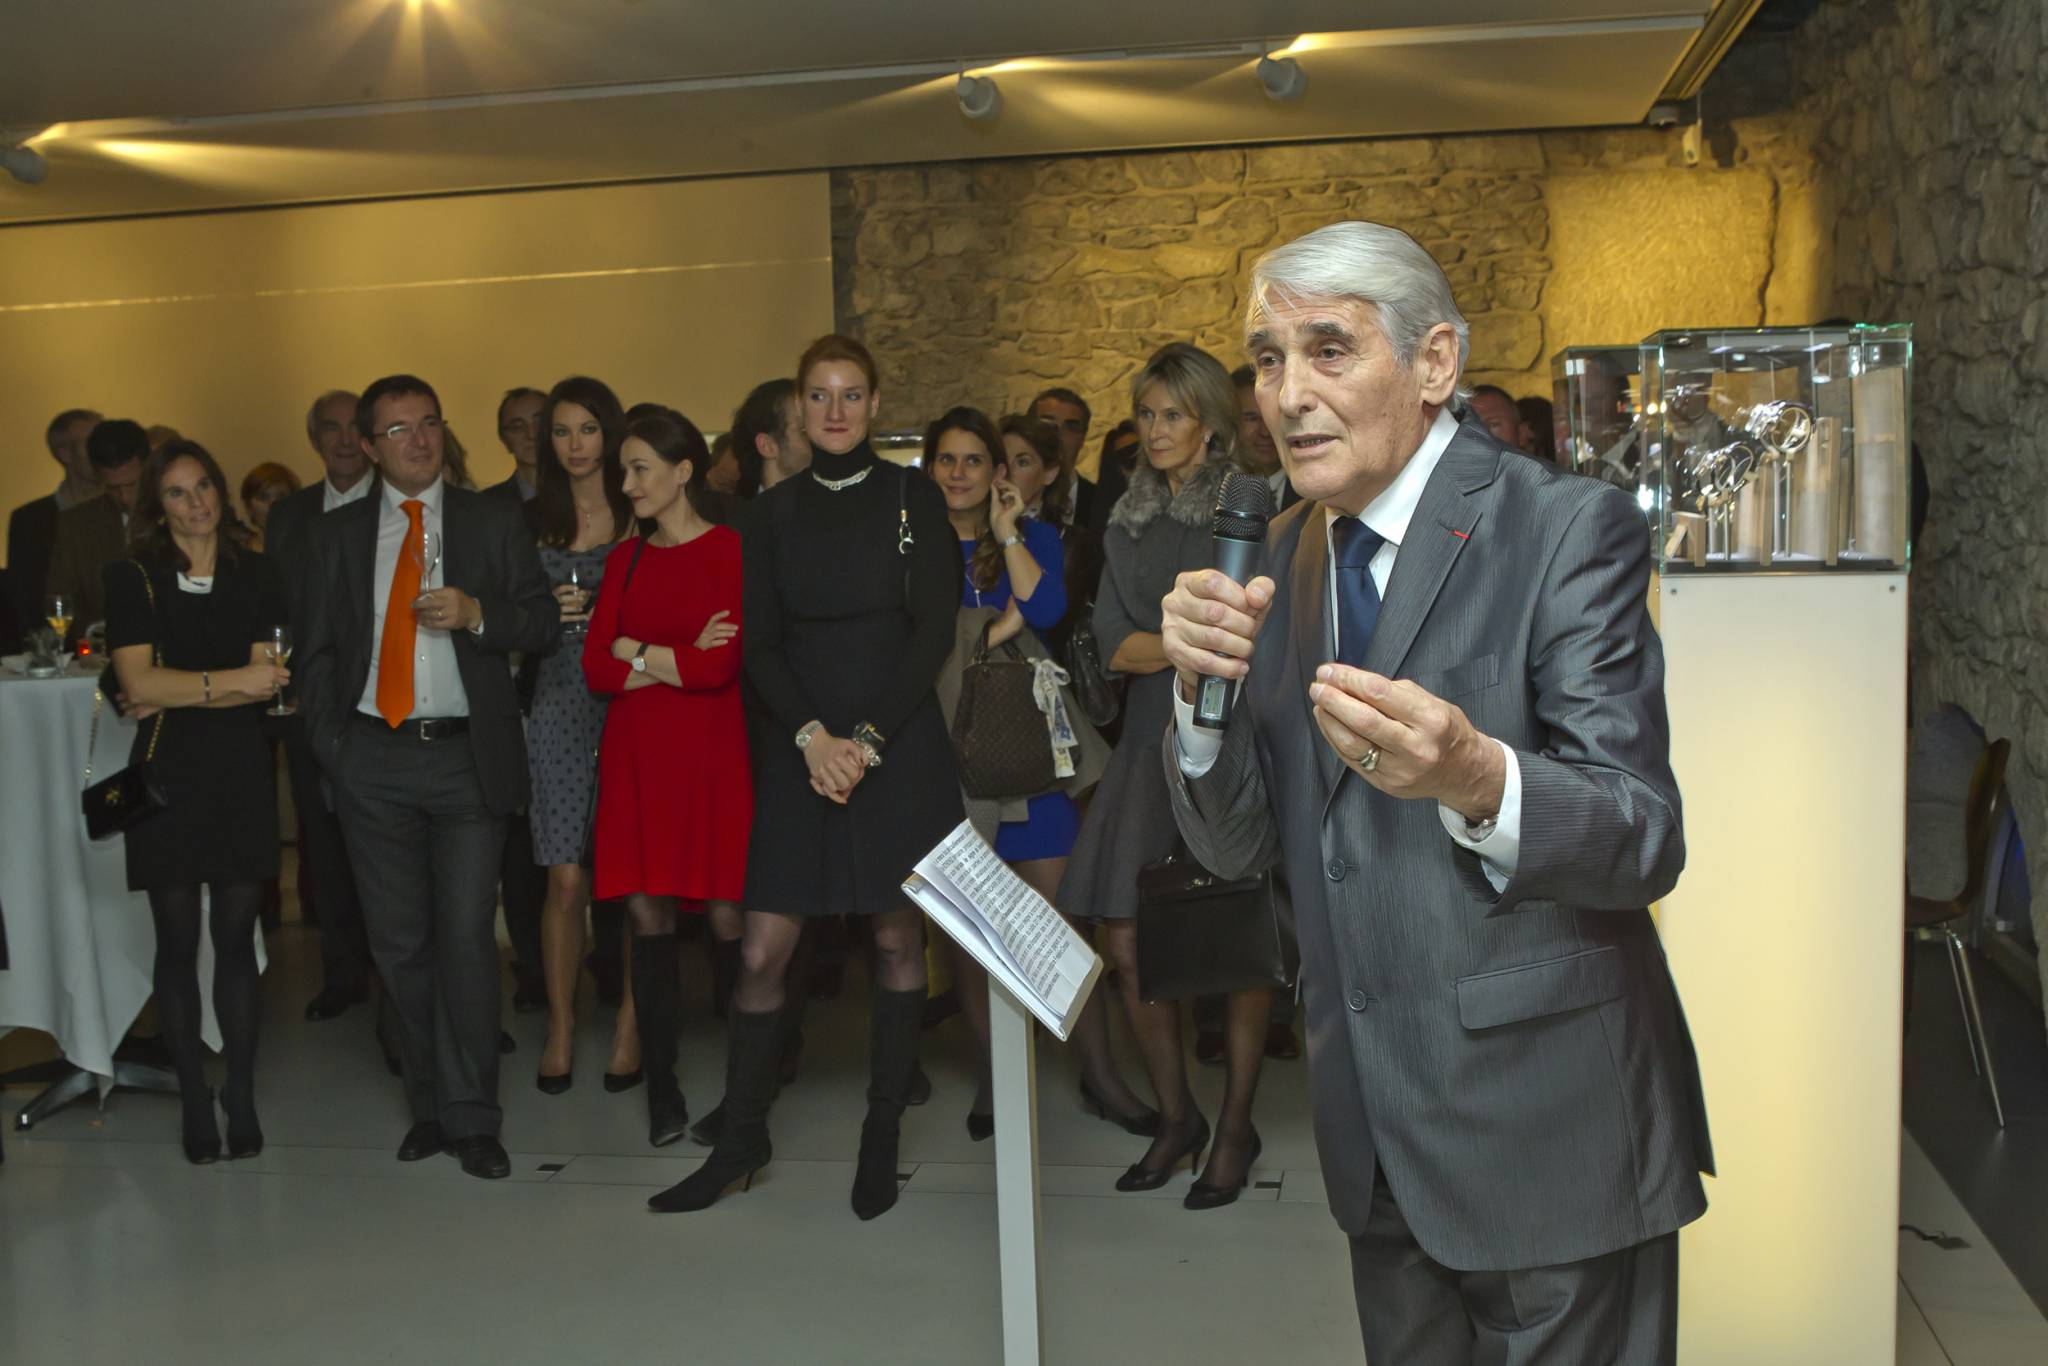 Speech from Carlo Lamprecht, President of the GPHG during the opening cocktail of the Geneva exhibition on the 8th of Nobember 2011